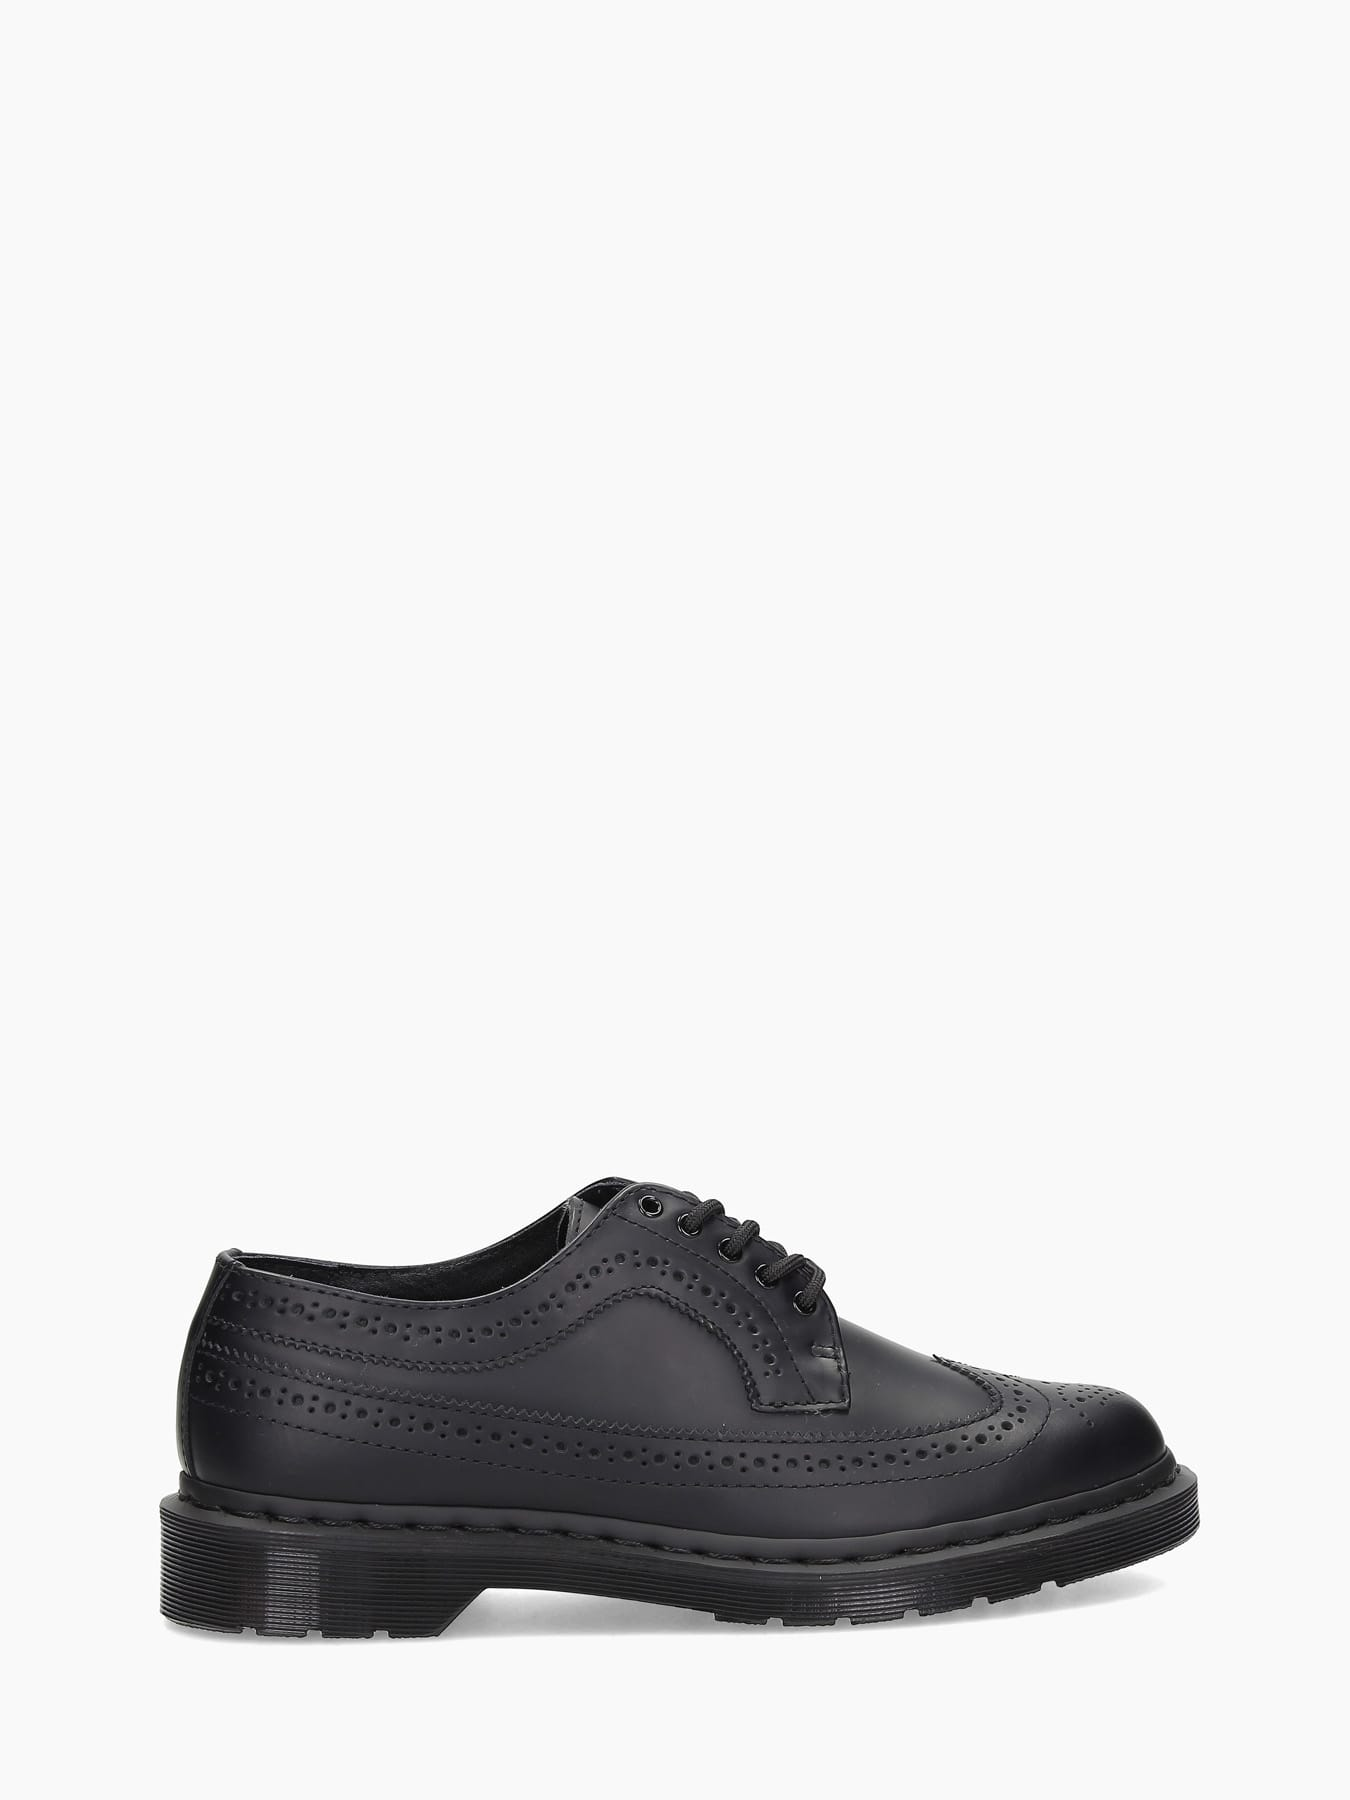 Dr. Martens Shoes 3989 MONO BLACK SMOOTH